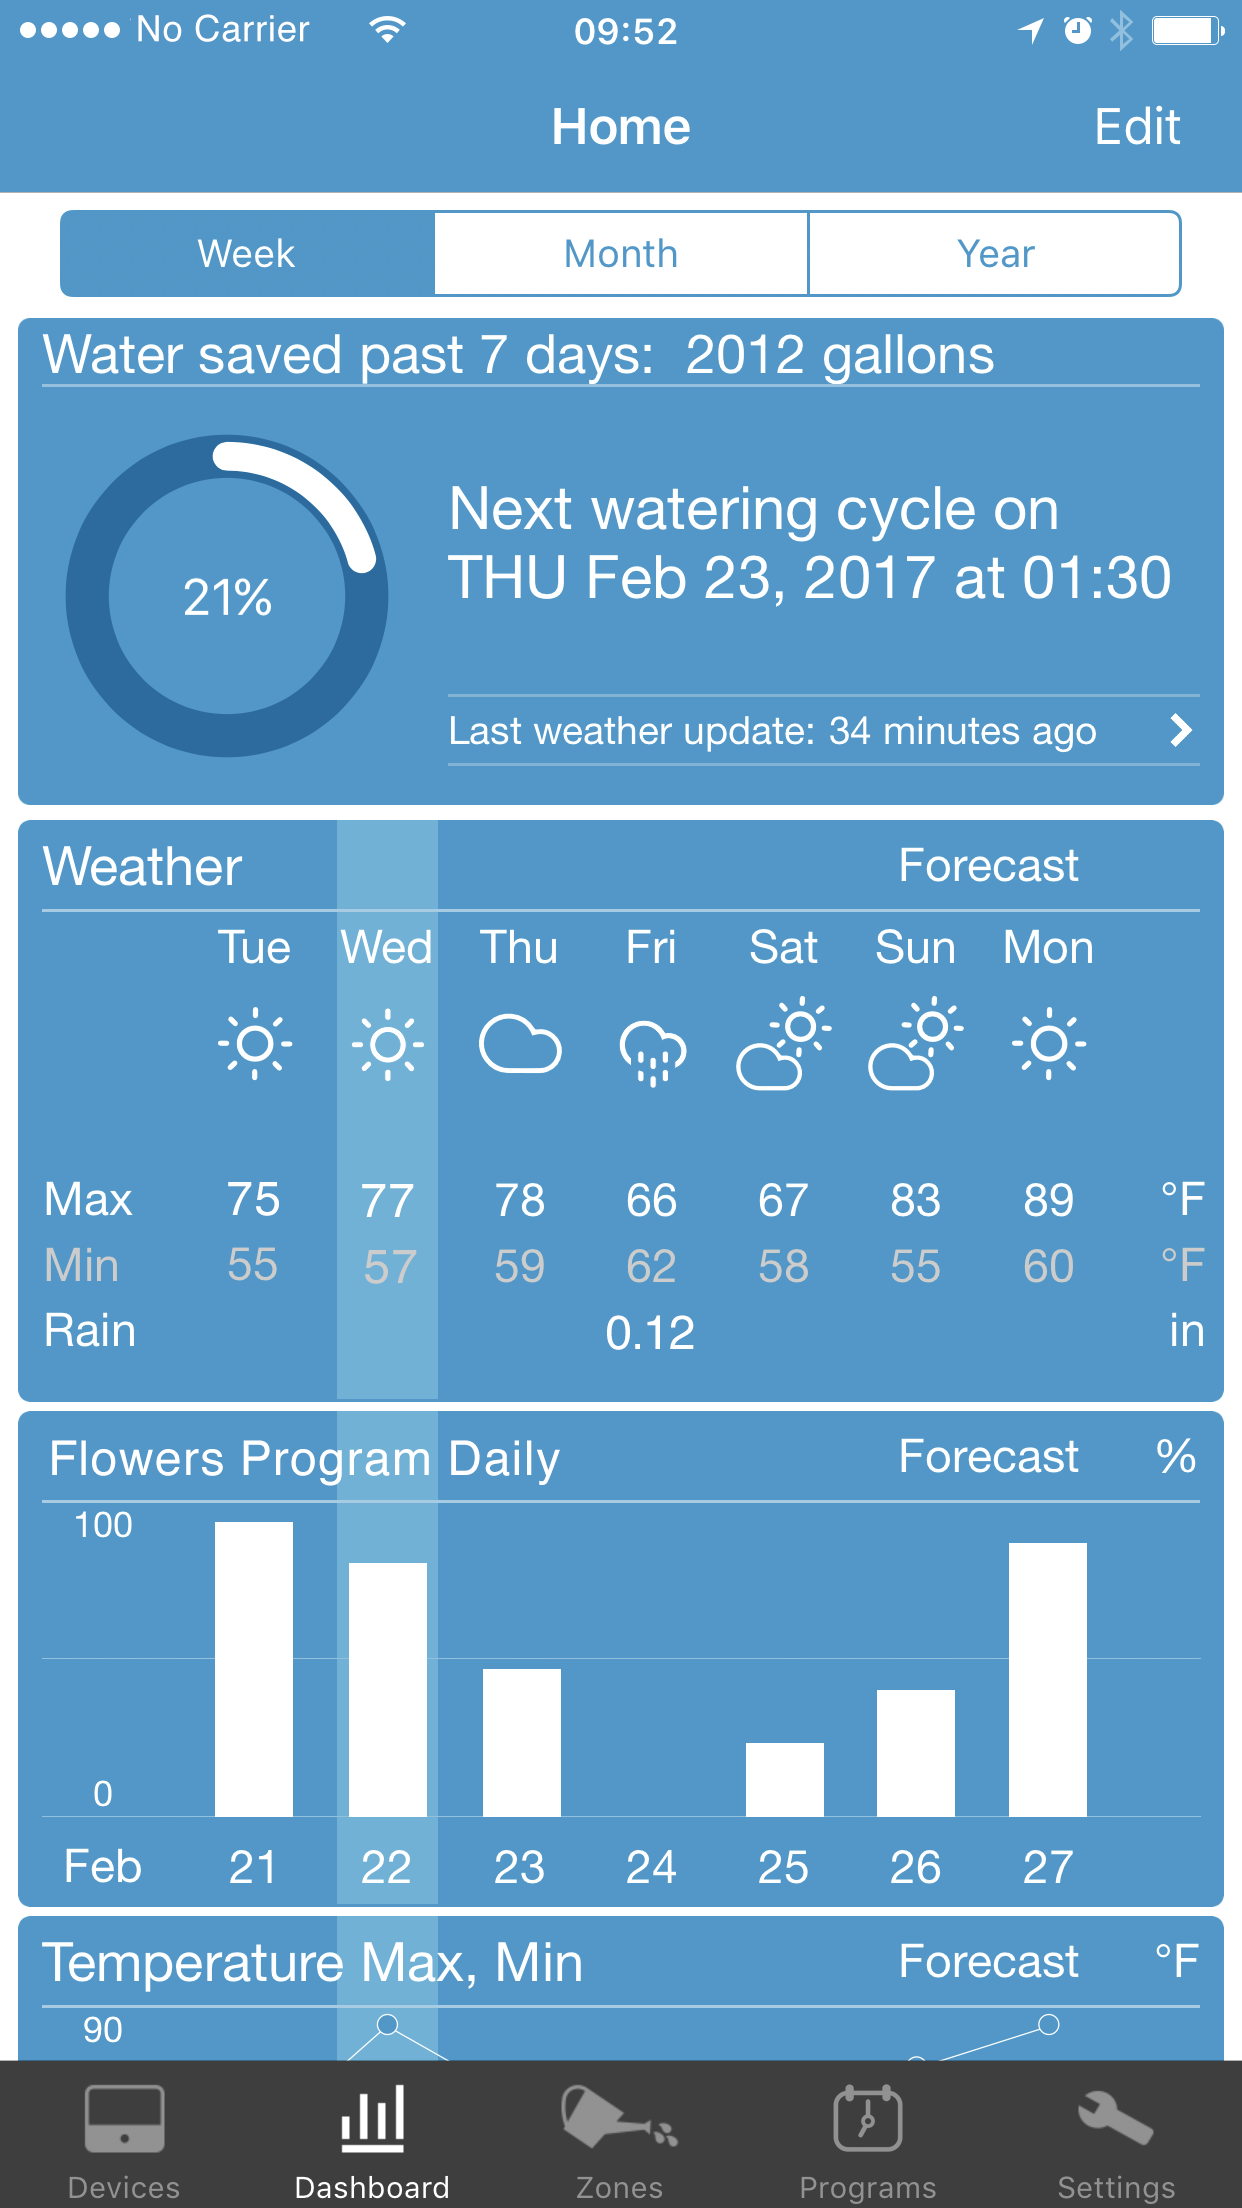 Dashboard screen of the RainMachine mobile application